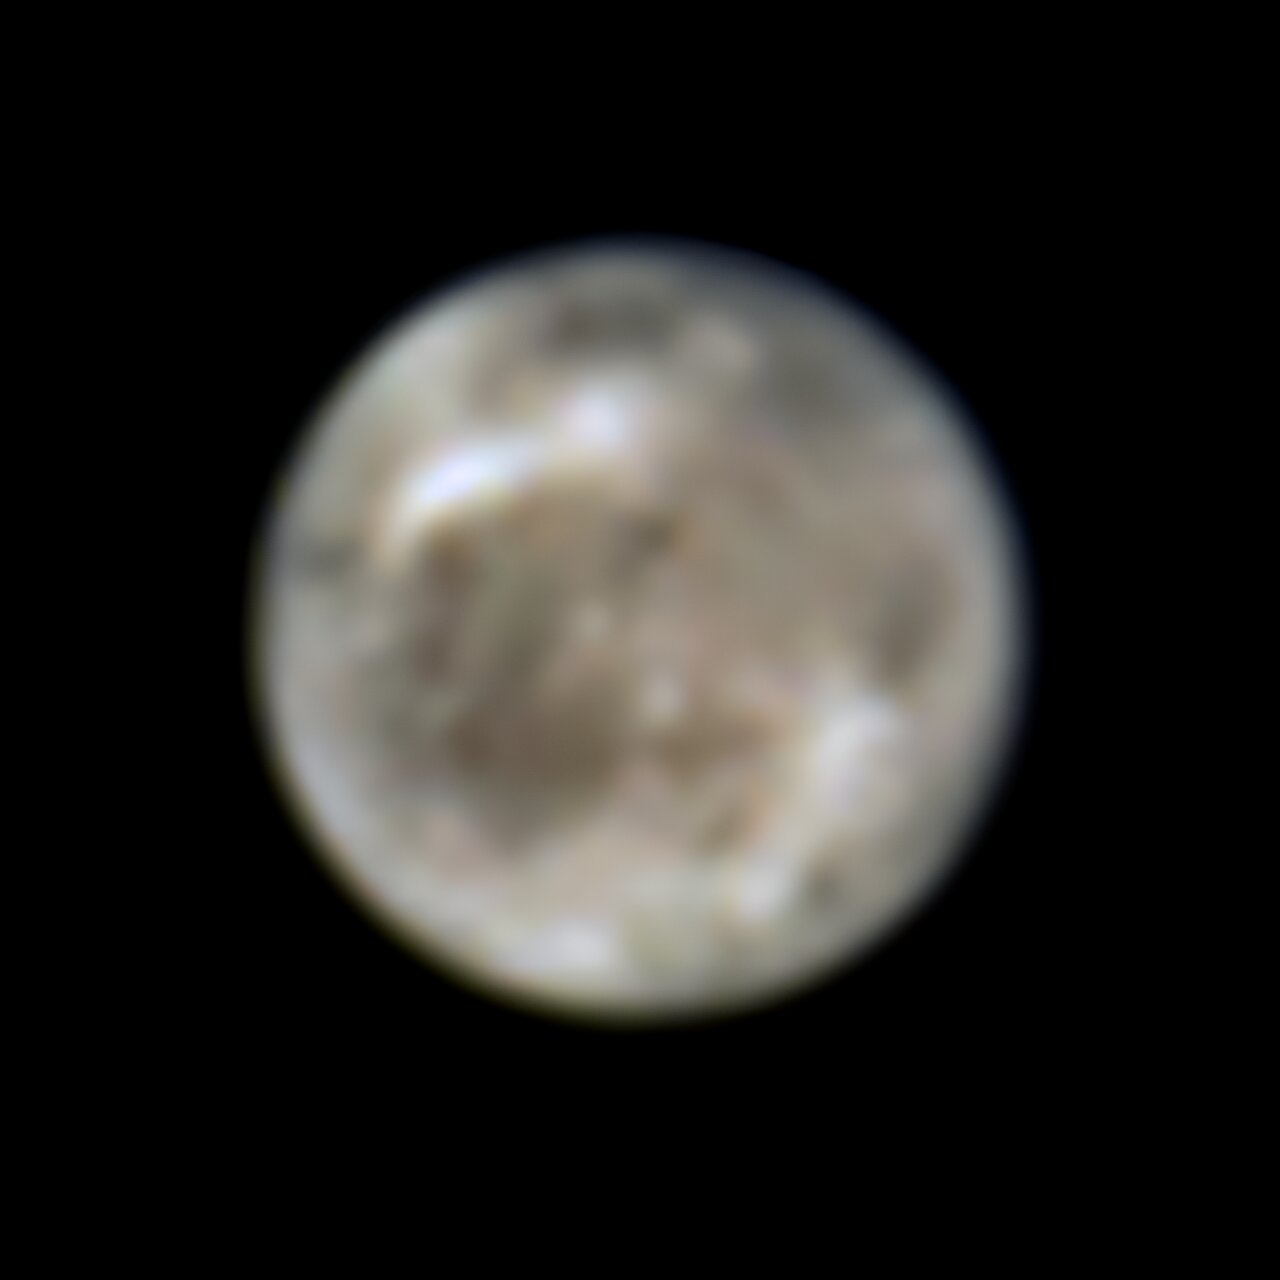 Science Release: Hubble Finds First Evidence of Water Vapour at Jupiter's Moon Ganymede